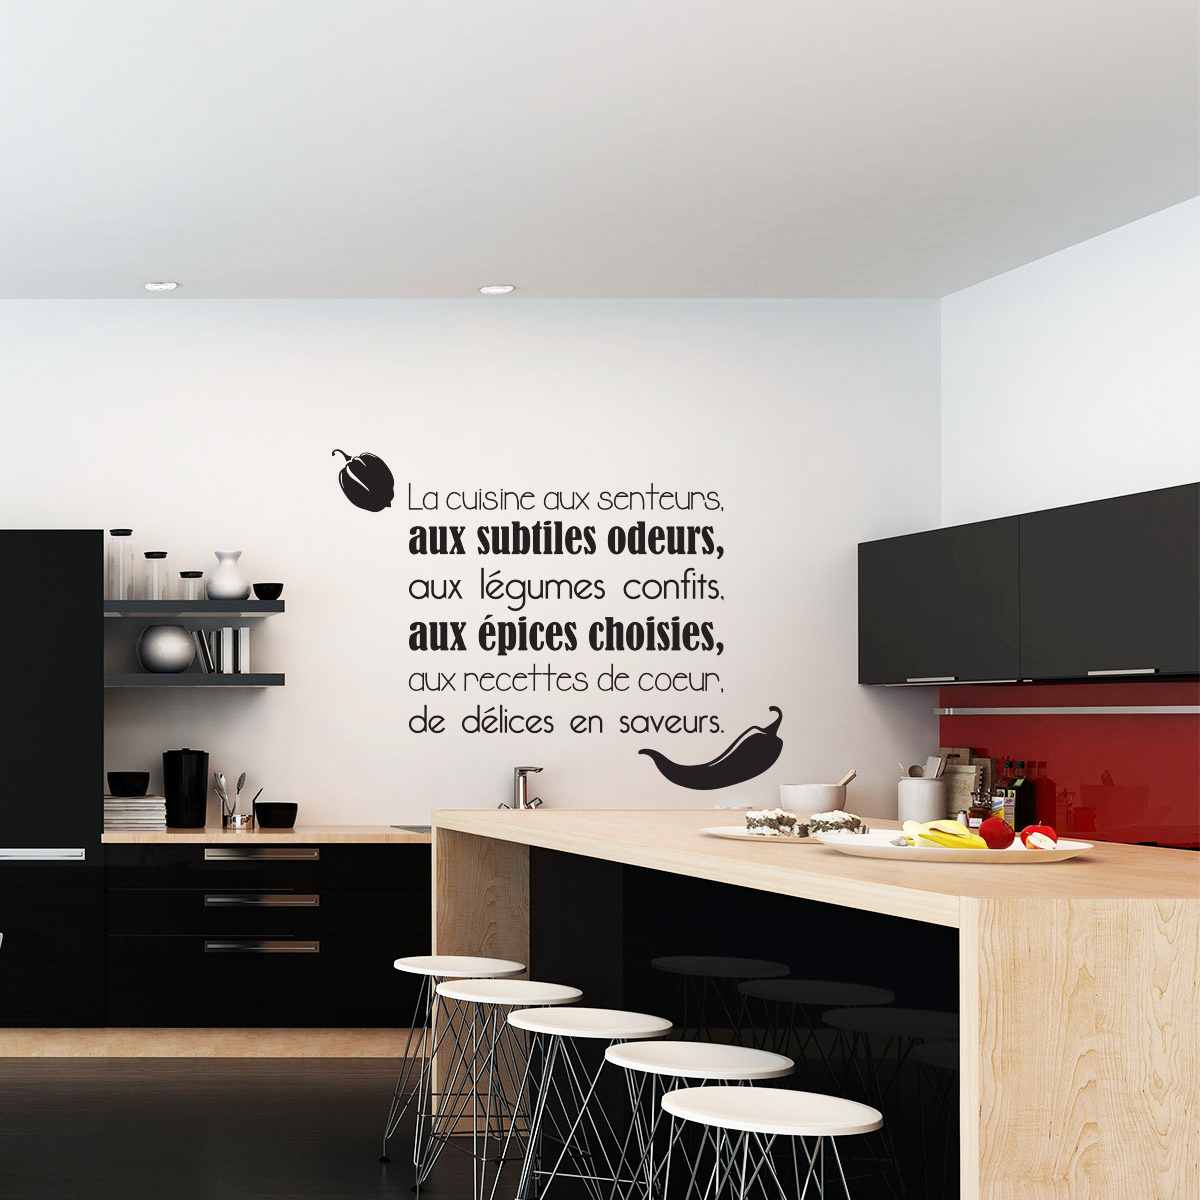 sticker citation la cuisine aux senteurs stickers citations fran ais ambiance sticker. Black Bedroom Furniture Sets. Home Design Ideas